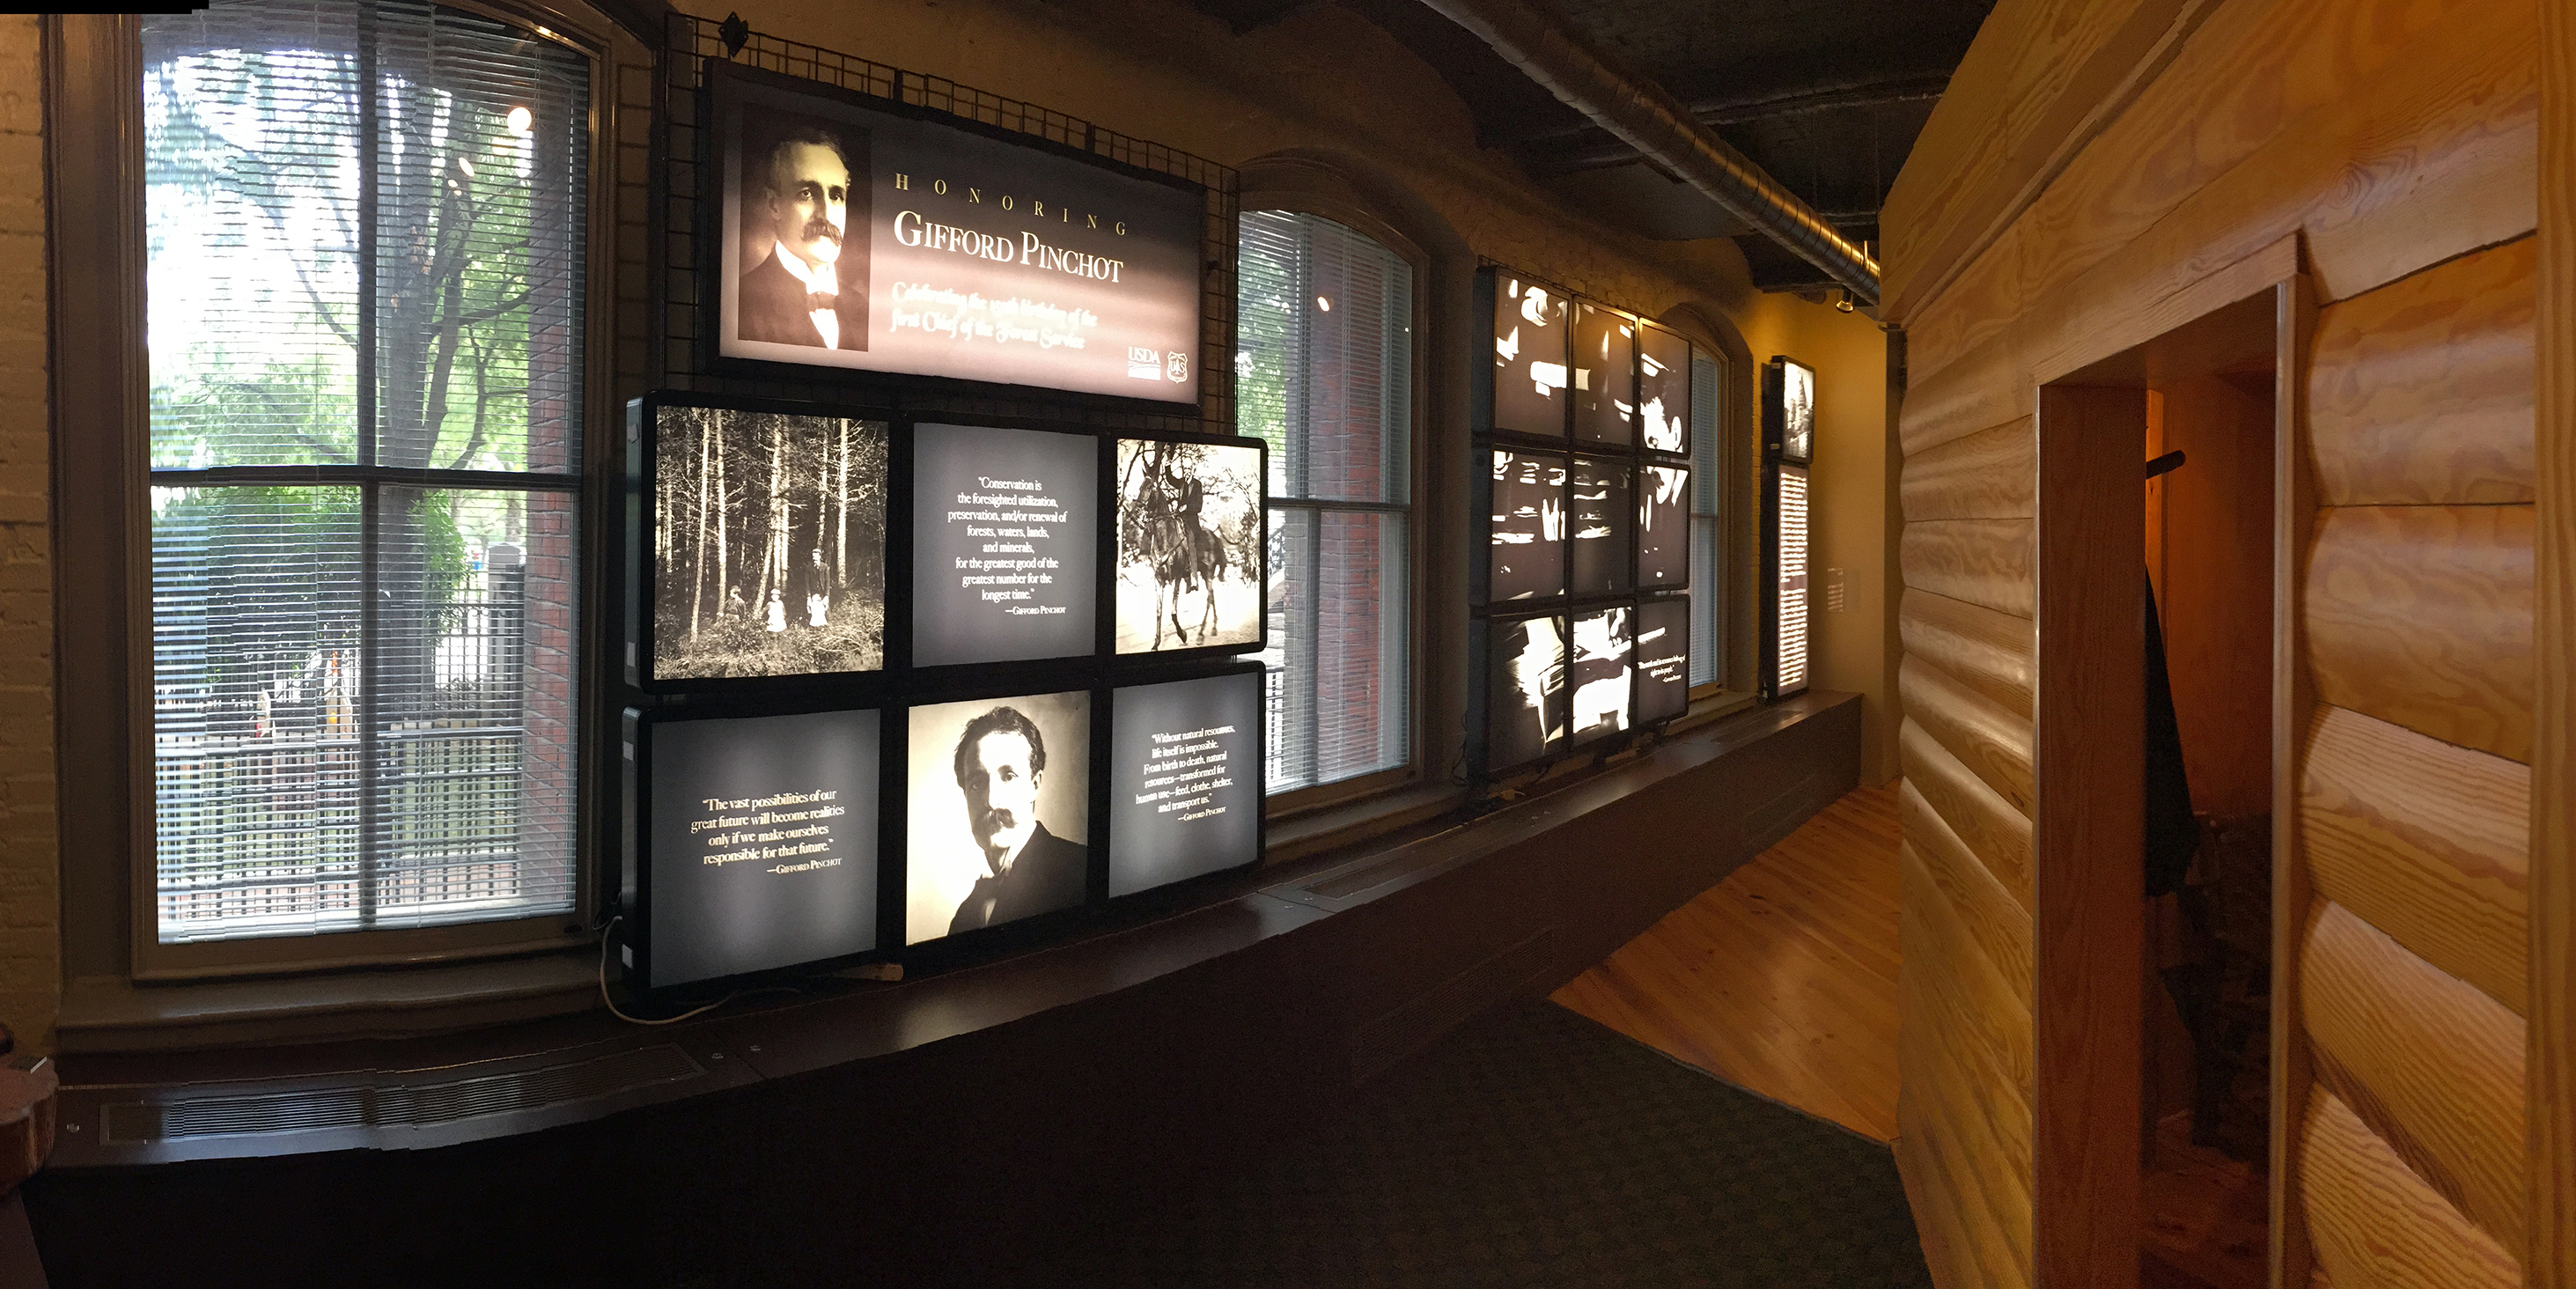 Large display panels honor Gifford Pinchot's 150th Birthday at the U.S. Forest Service headquarters in Washington, D.C. (USFS Photo)